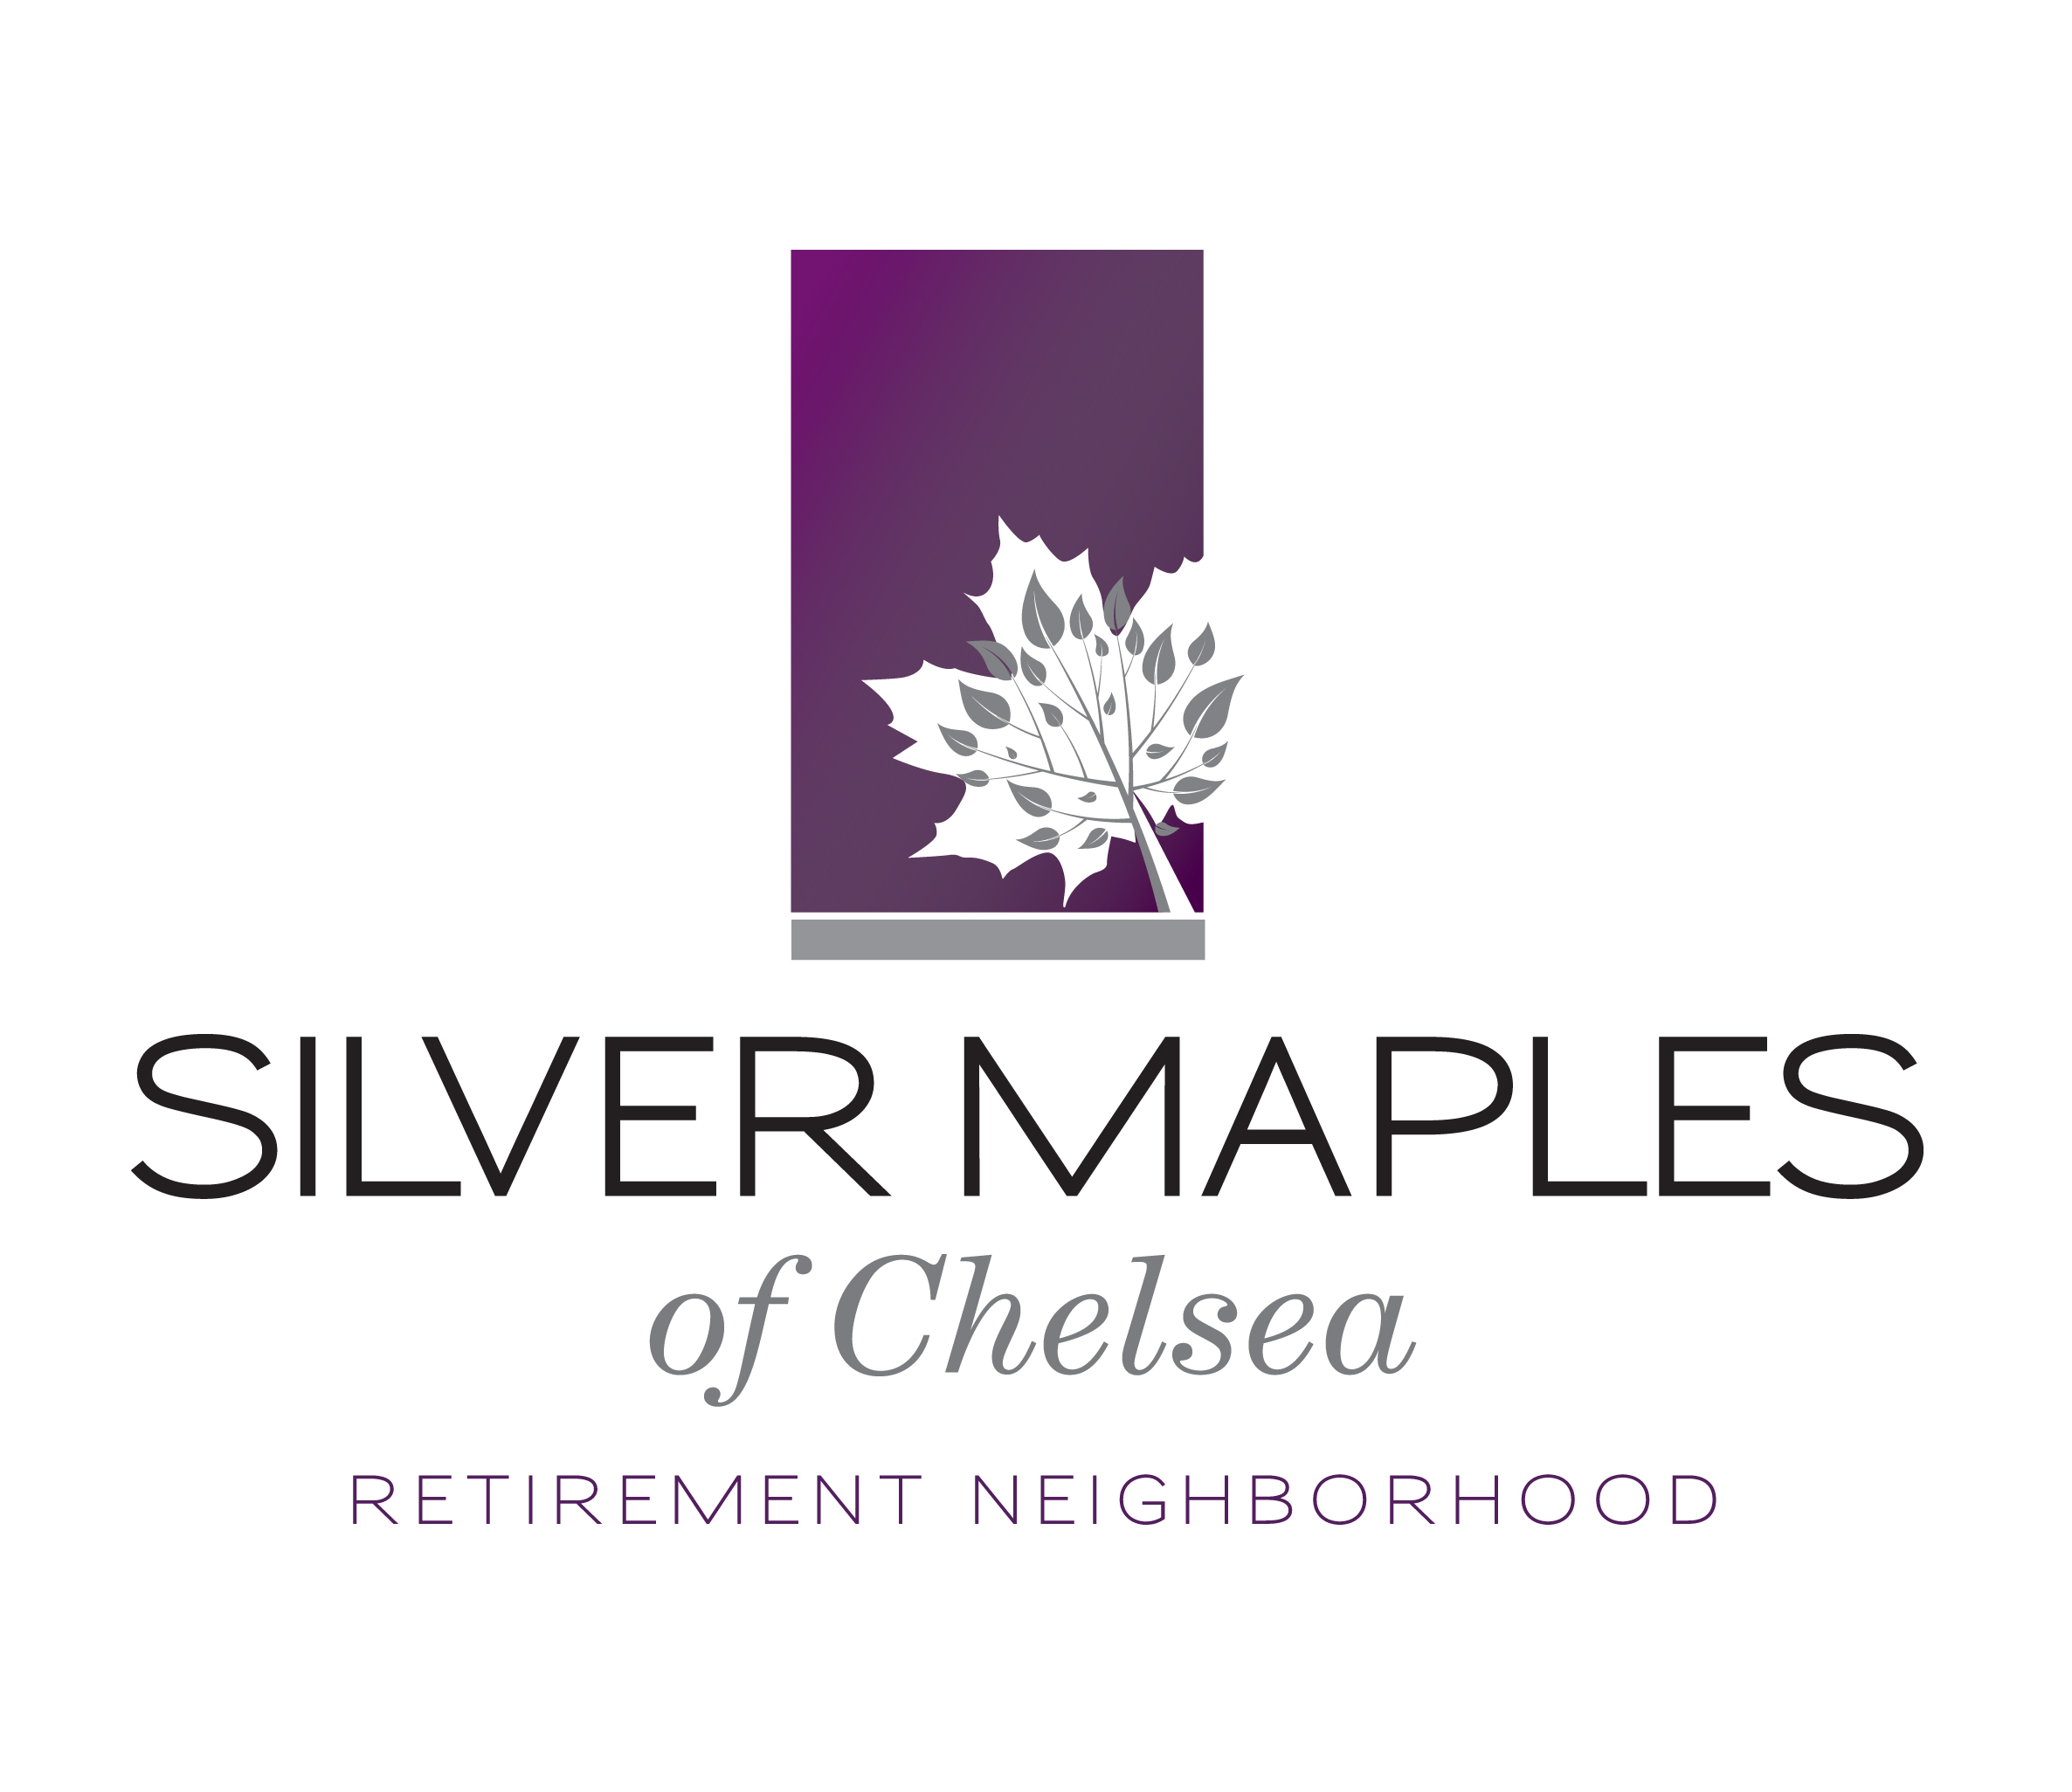 Silver Maples of Chelsea